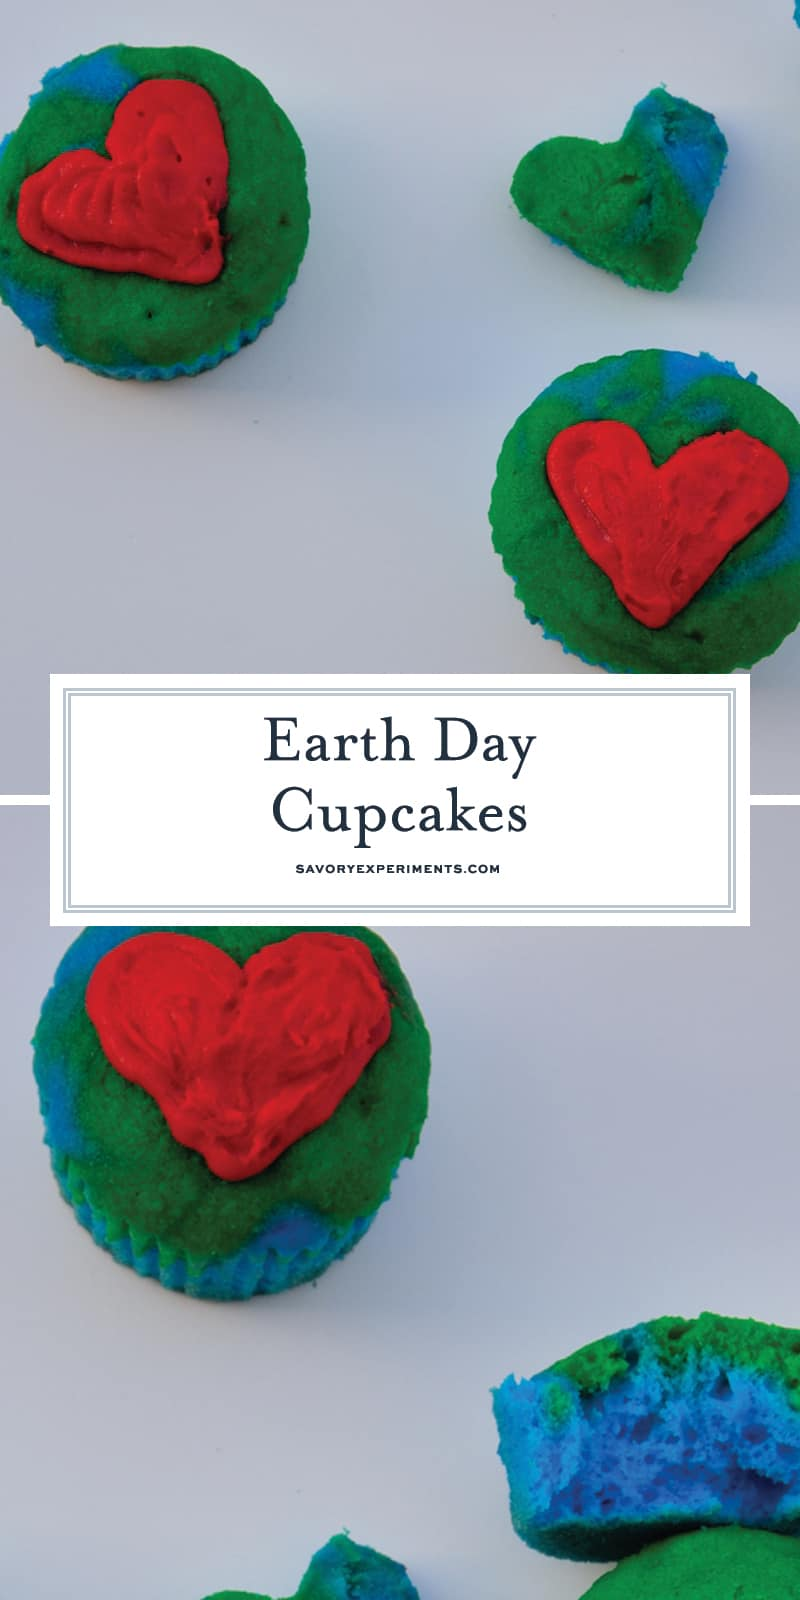 Earth Day Cupcakes are a simple way to remind ourselves to love the earth and celebrate what it provides for us. #earthday www.savoryexperiments.com